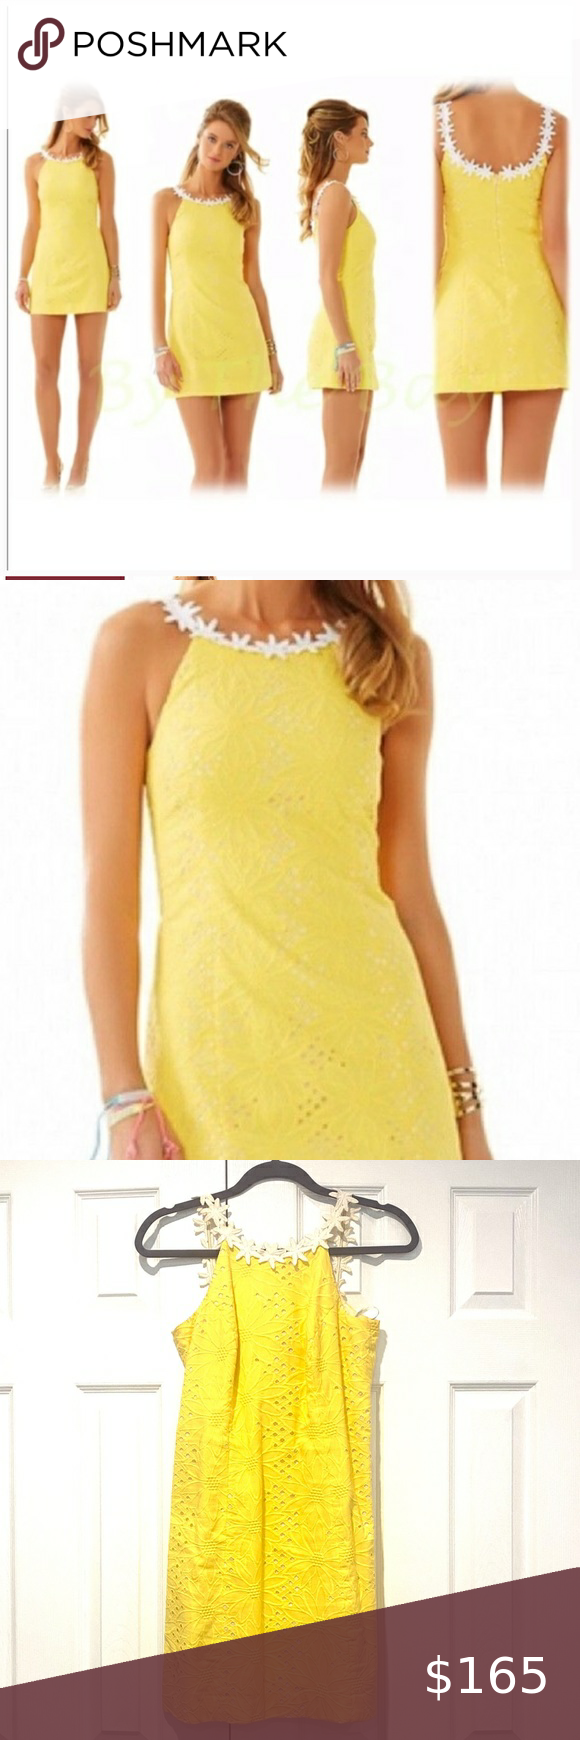 Lilly Pulitzer Annabelle Sunflower Yellow Dress Lilly Pulitzer Sunshine Yellow Sleeveless Dress 00 Gorgeous Dr Yellow Dress Clothes Design Navy And Gold Dress [ 1740 x 580 Pixel ]